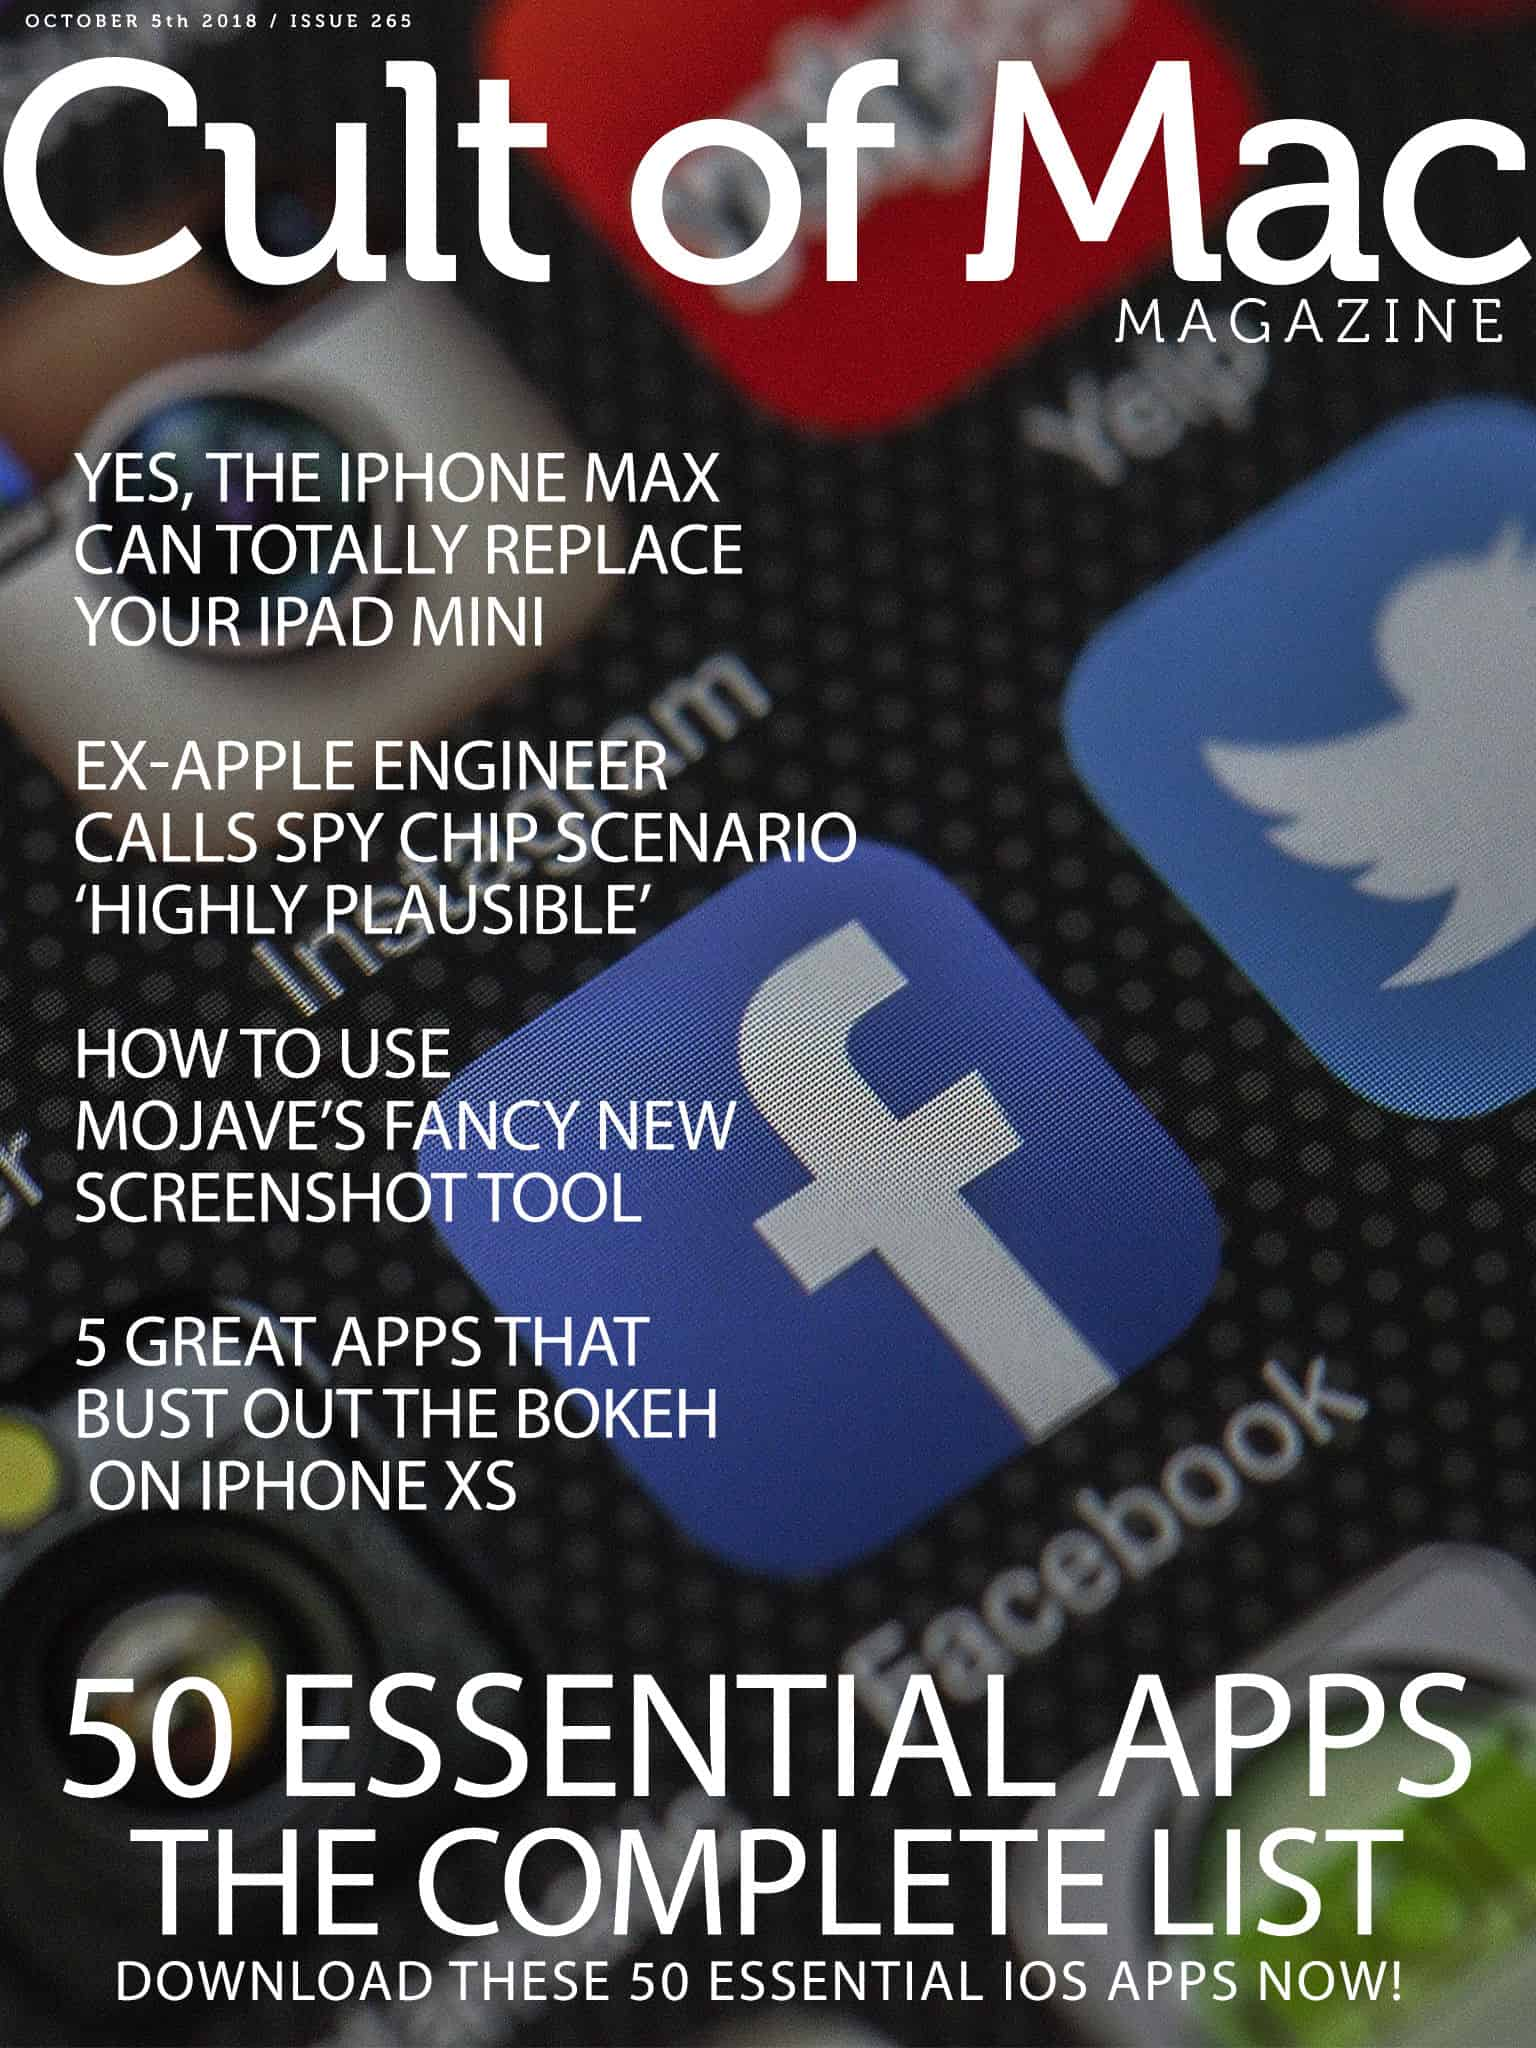 Get our 50 Essential iOS Apps to boost your iPhone or iPad experience.